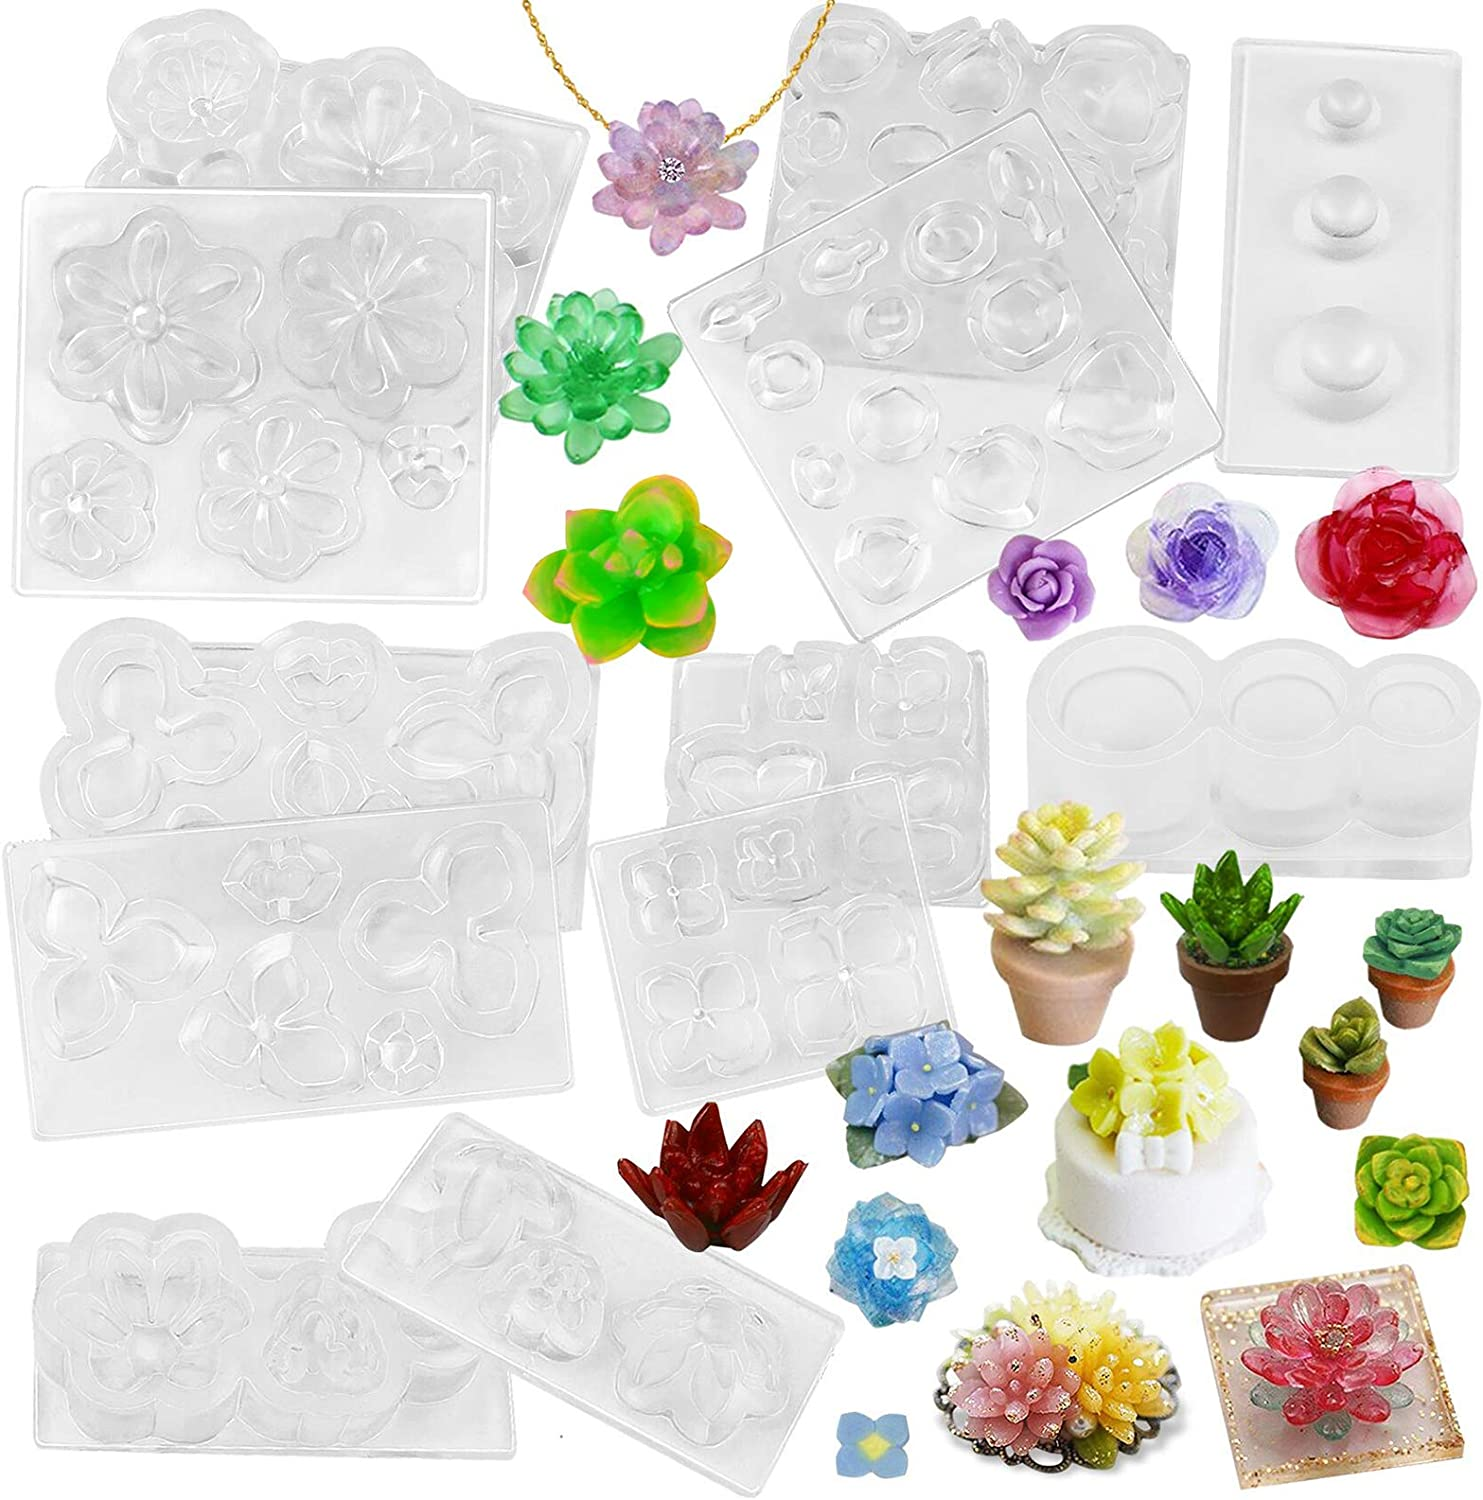 FUNSHOWCASE Succulent Flower Pot Resin Silicone Molds Set of 6 Mini Trays for Jewelry Casting Bracelet Charm Earrings Pendant Ring Miniature Ornament